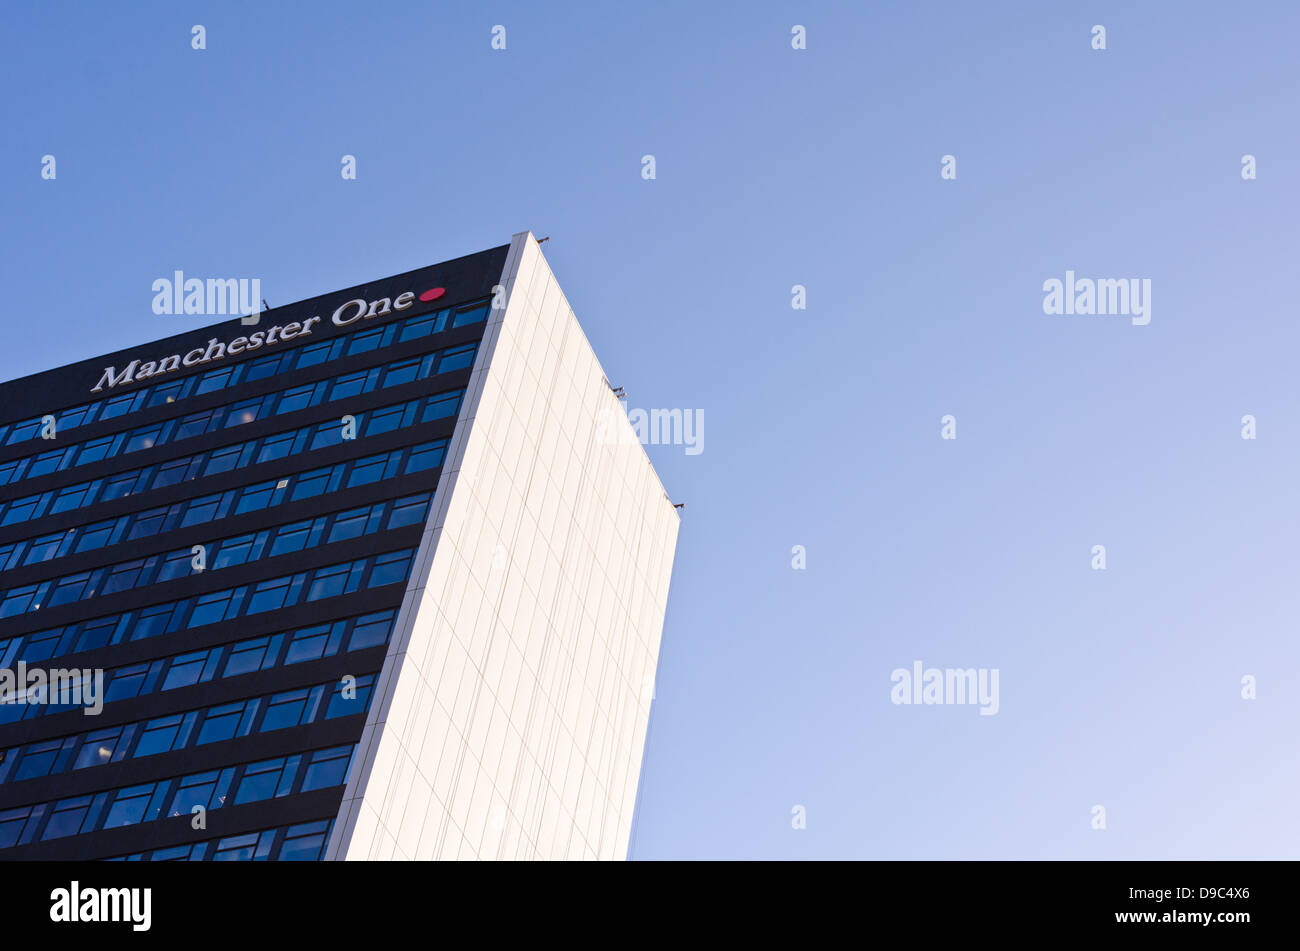 The Manchester One building on Portland Street in Manchester, UK - Stock Image